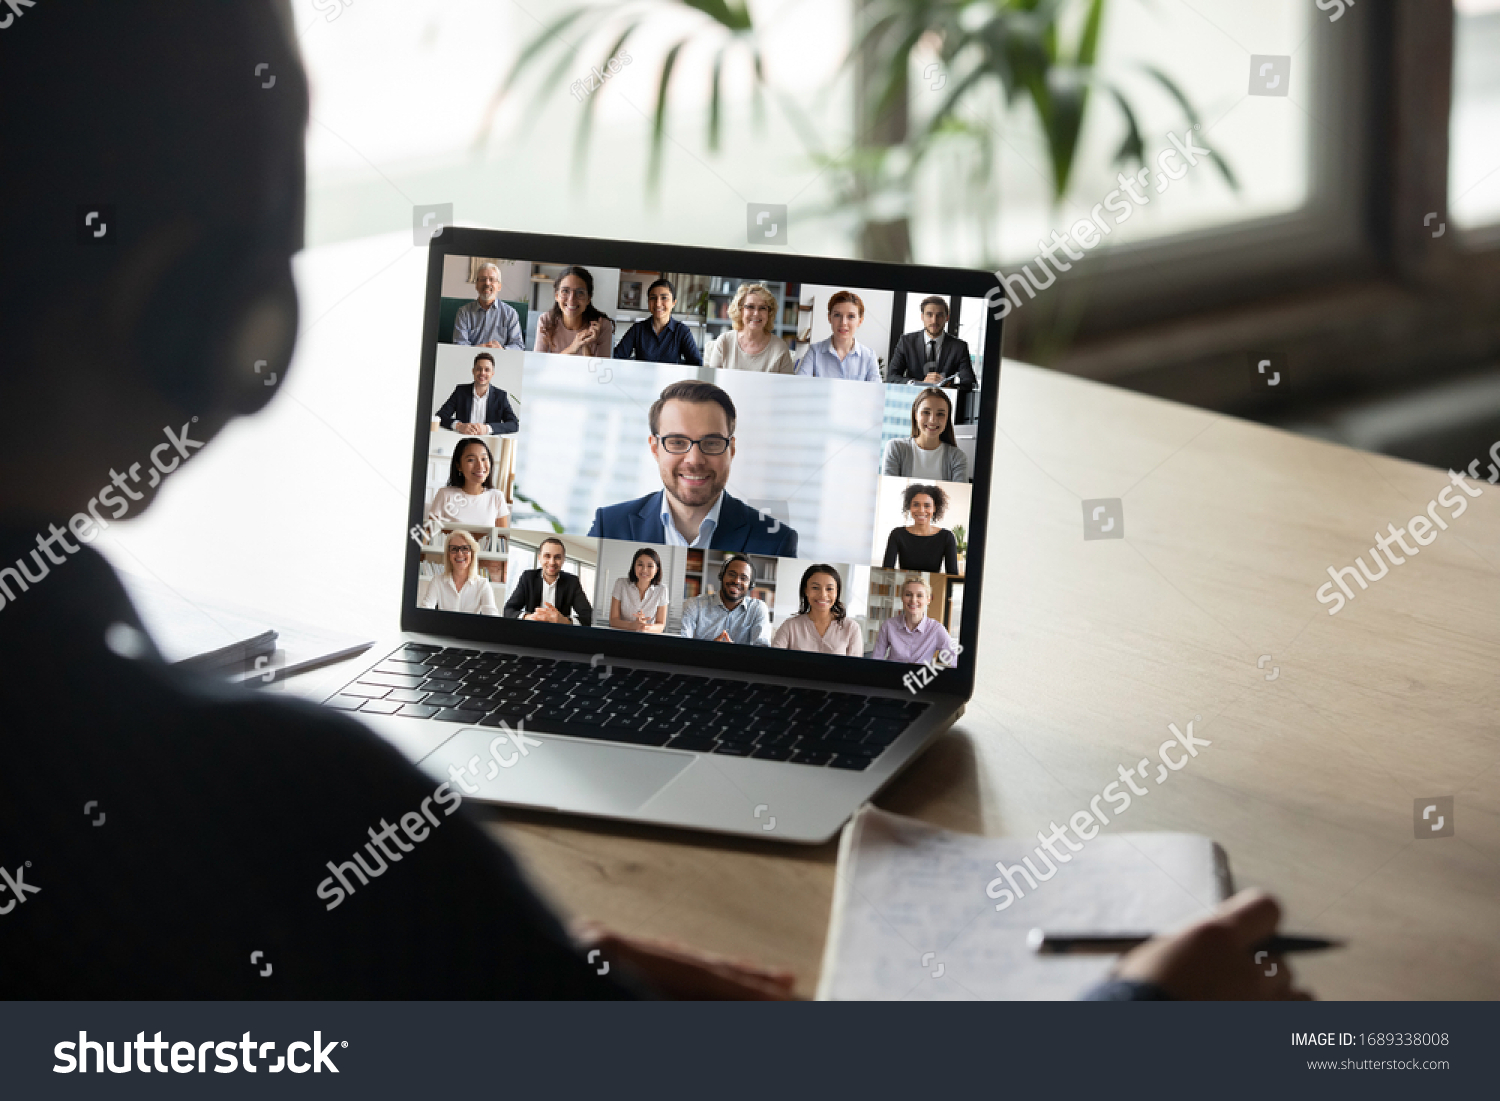 Back view of female employee engaged in team Webcam conference on laptop, have online briefing or consultation from home, woman worker speak talk on group video call with diverse colleagues #1689338008